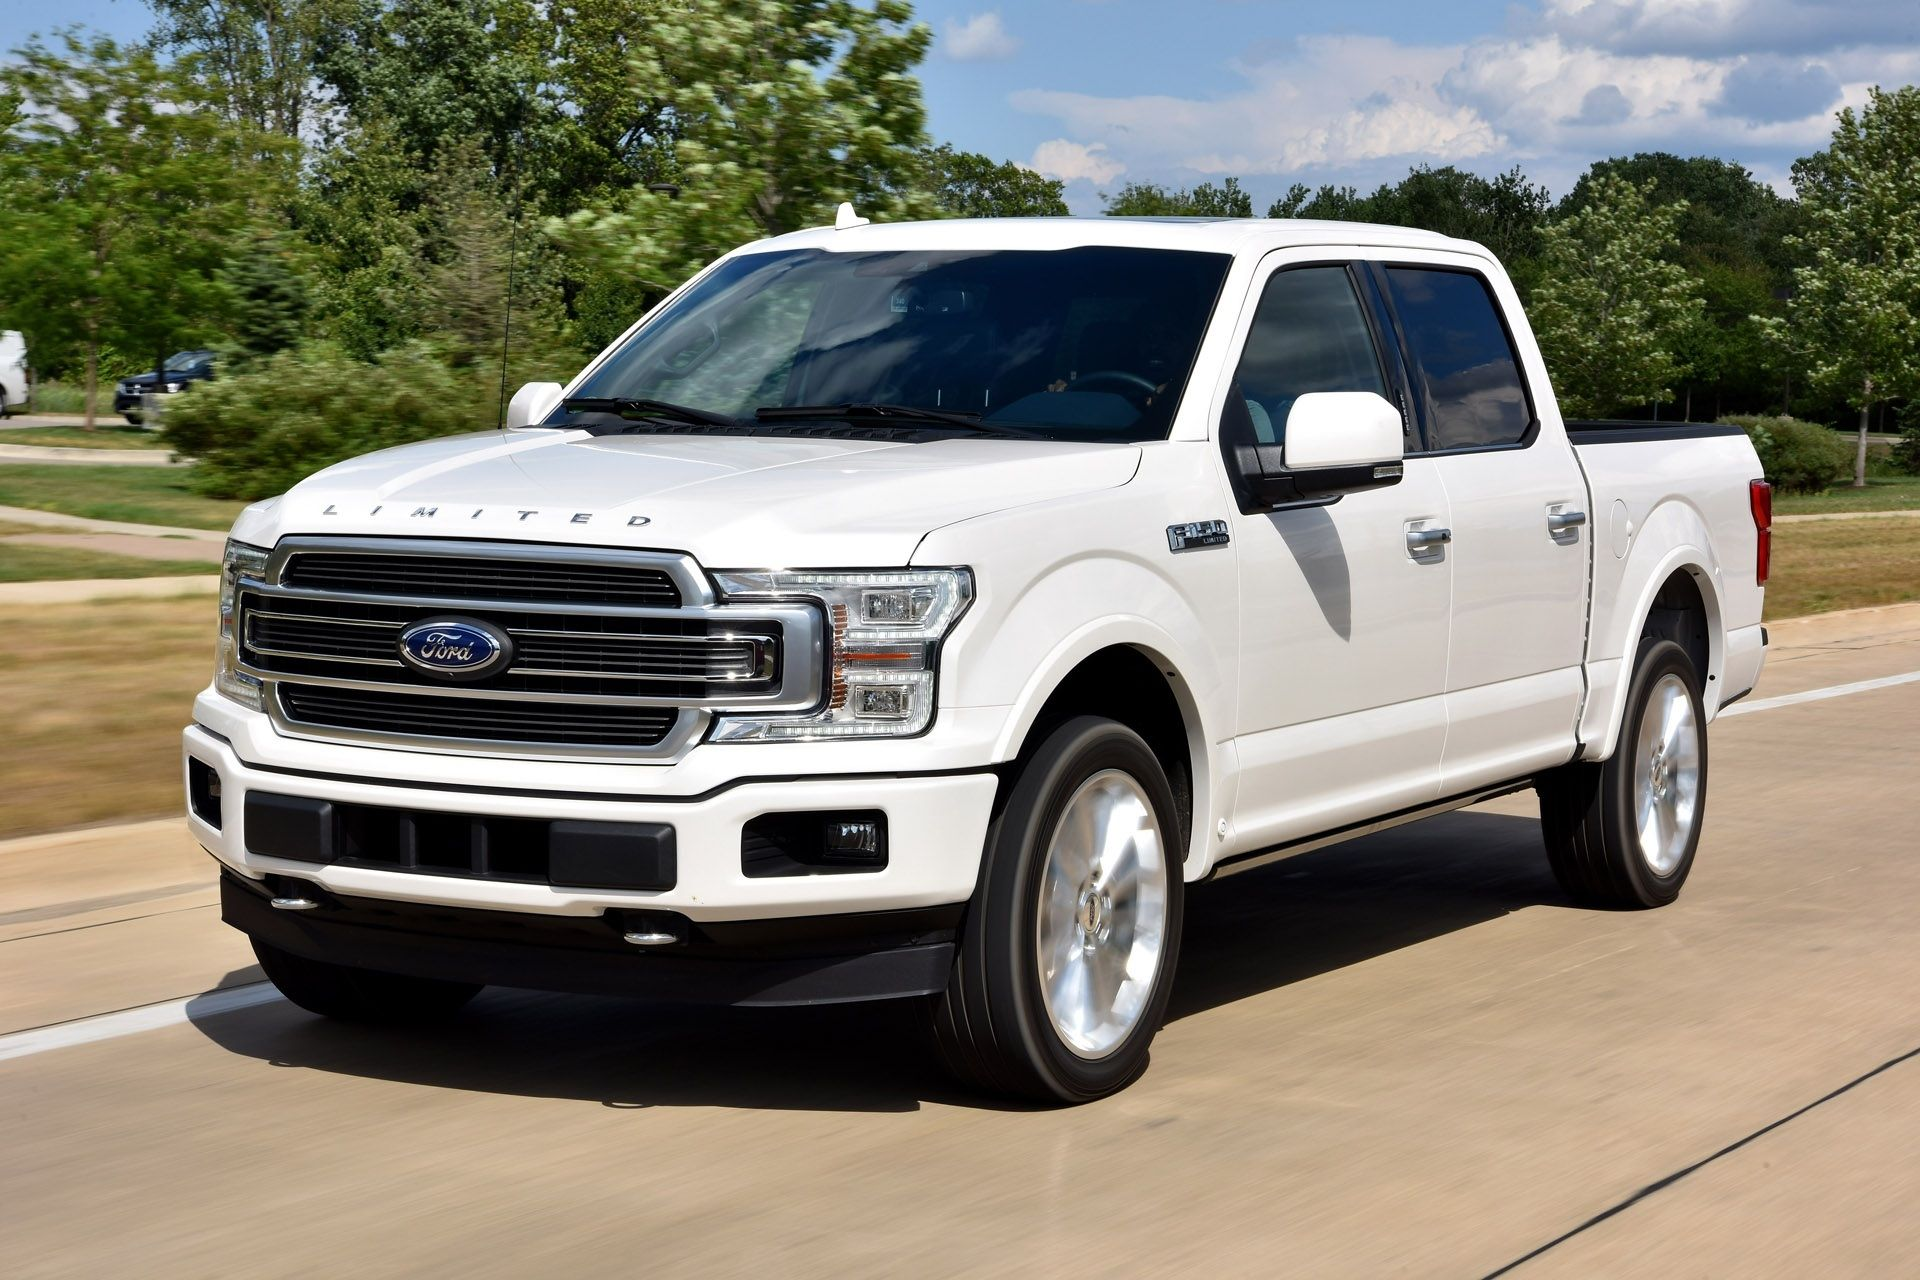 2019 Ford F150 Lariat Interior Exterior And Review Ford F150 Ford Trucks F150 Ford 2020